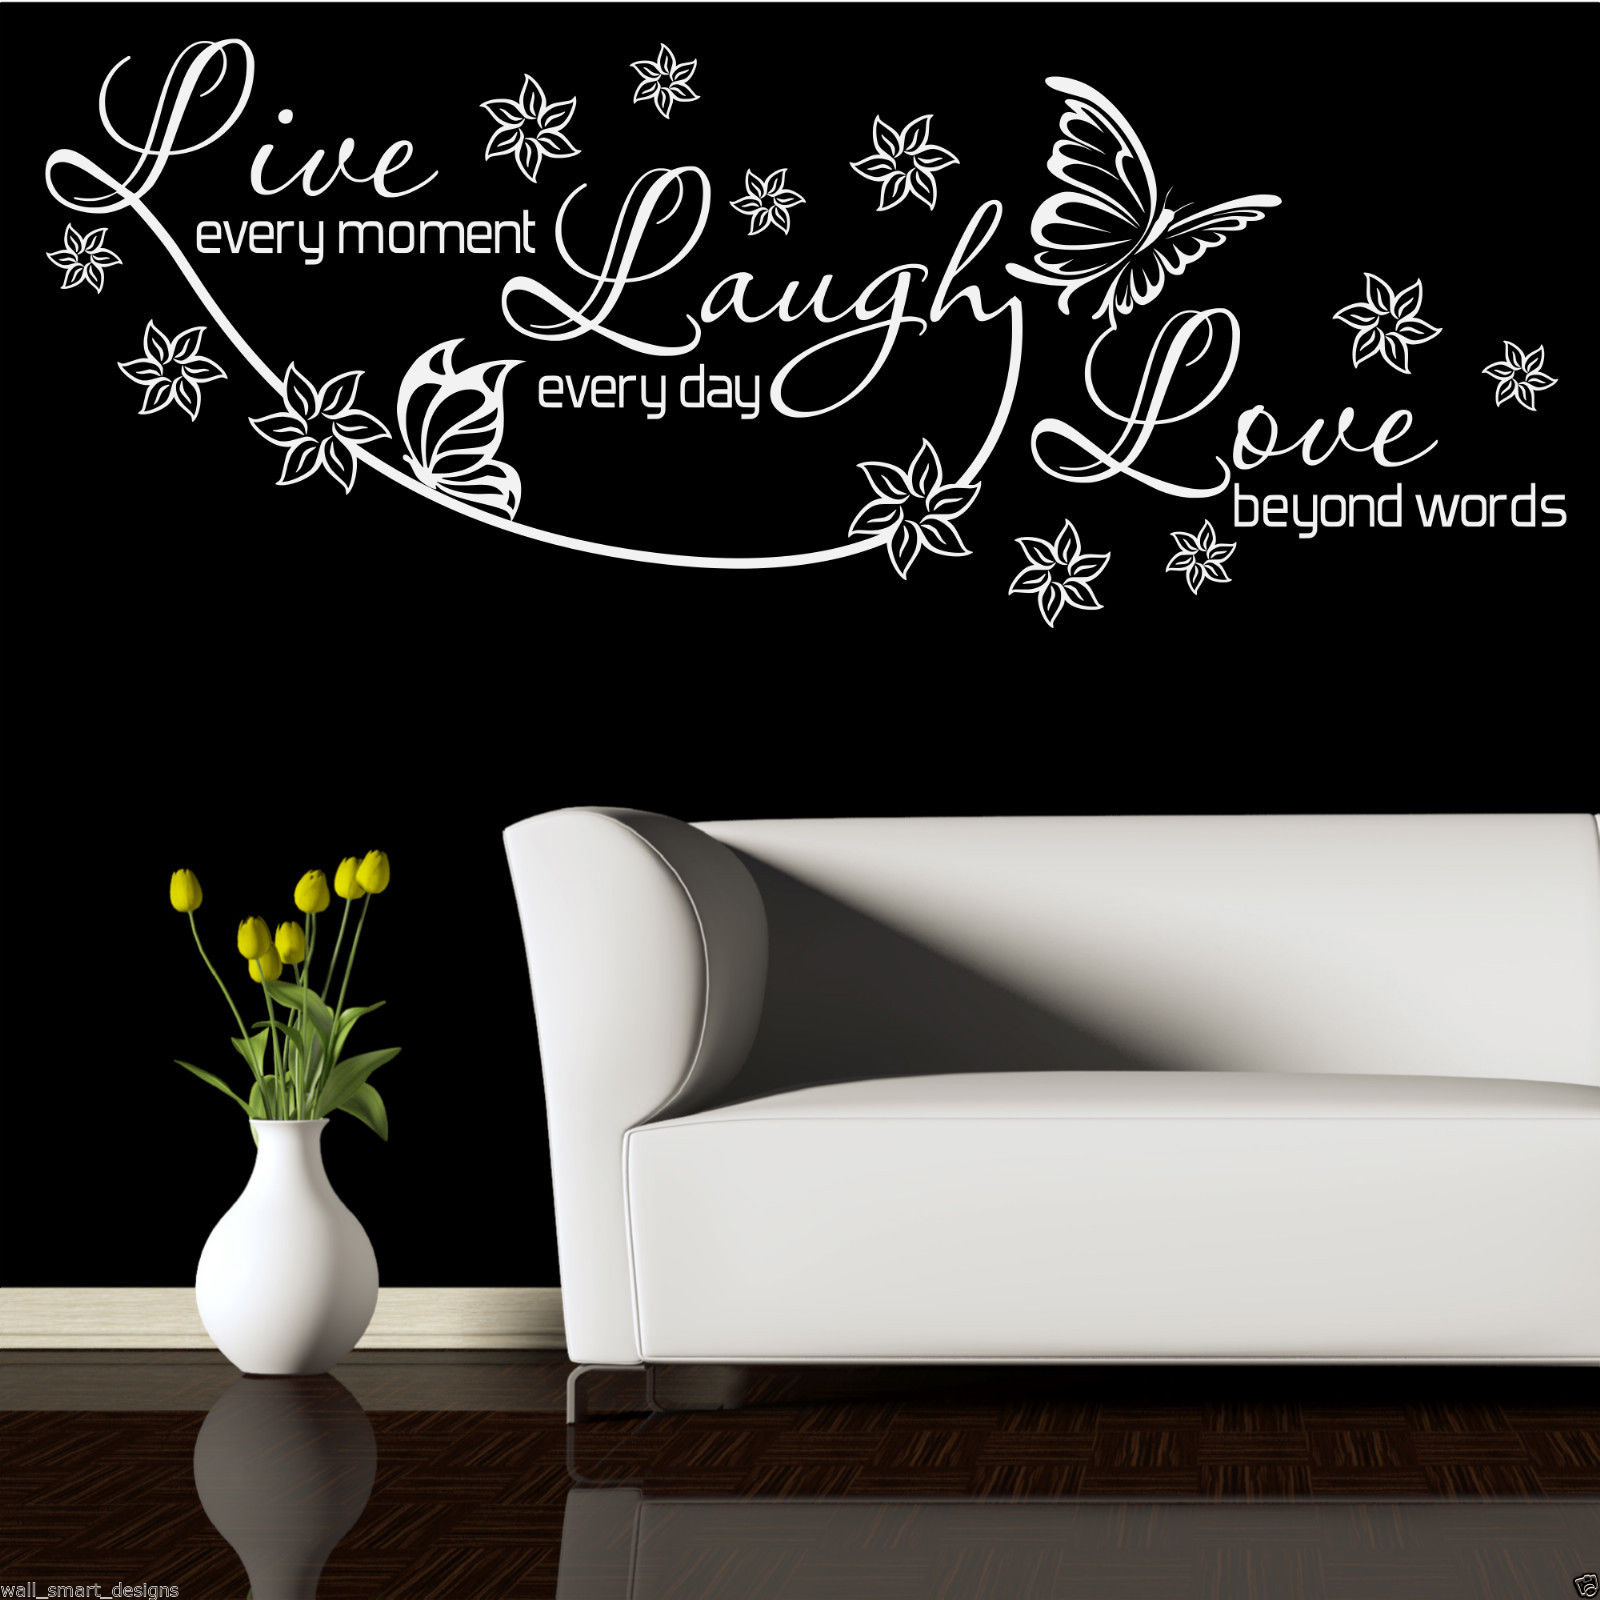 wall art decals live laugh love color the walls of your house wall art decals live laugh love home furniture diy home decor